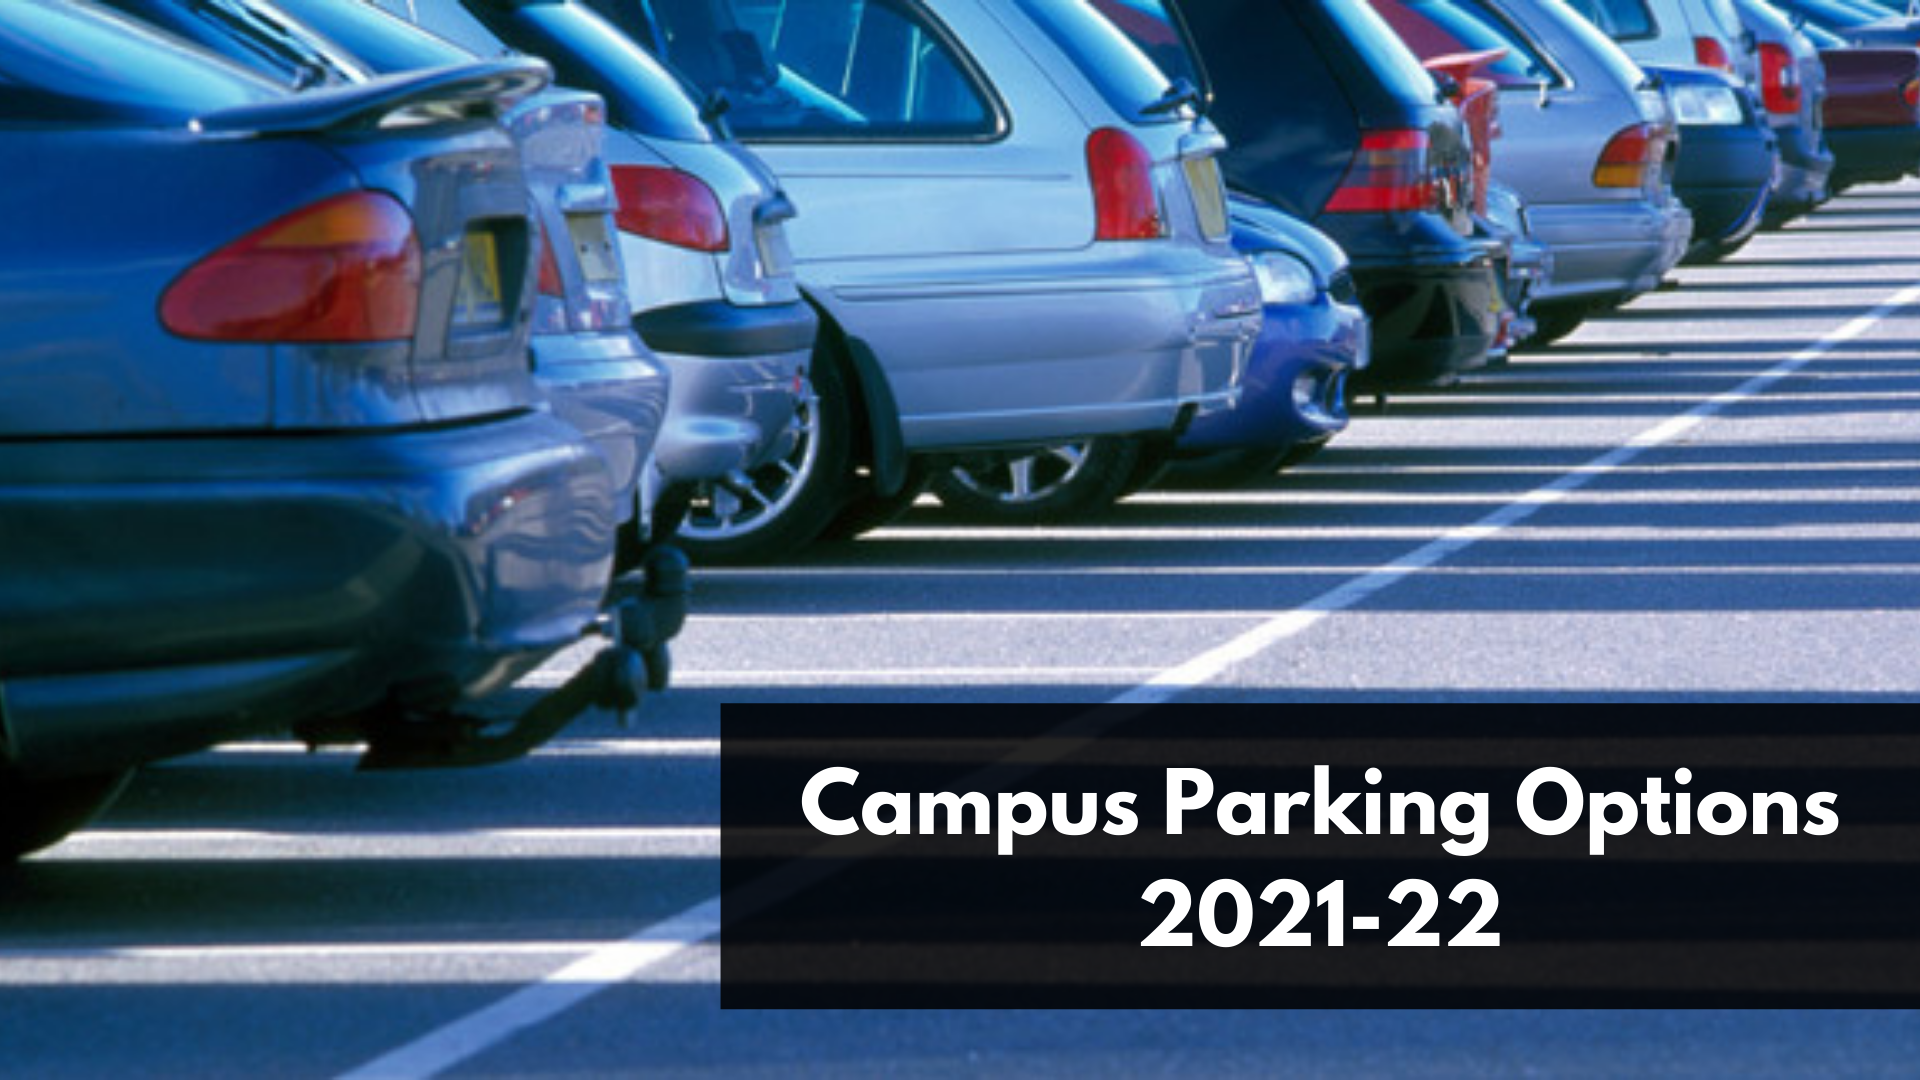 Graduate and professional students: Apply for expanded daily parking program; annual parking permits available in August